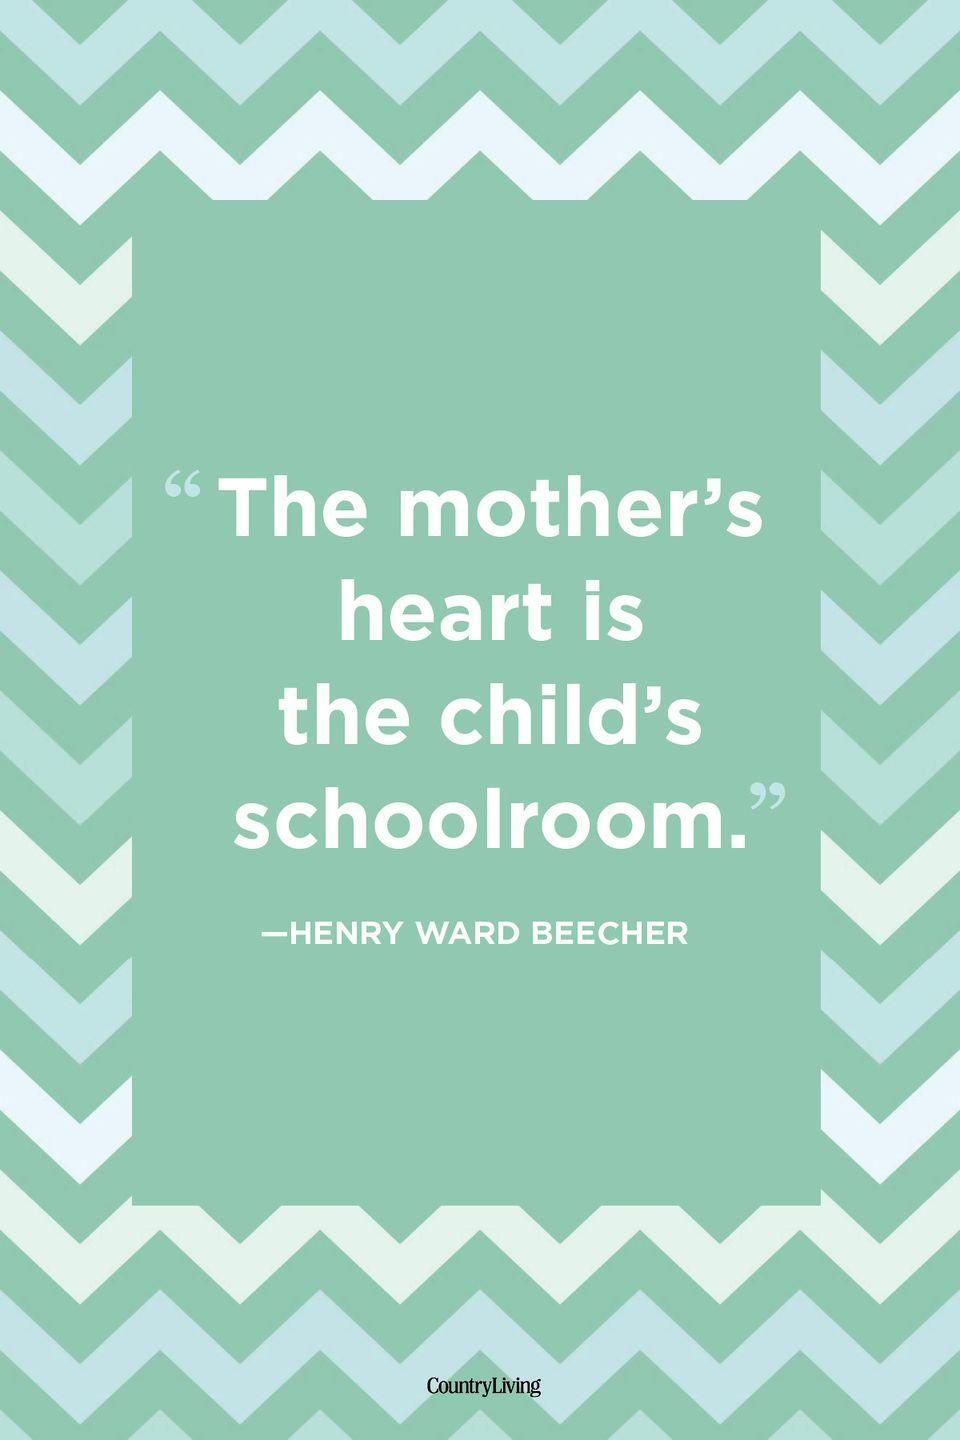 "<p>""The mother's heart is the child's schoolroom.""<br></p>"